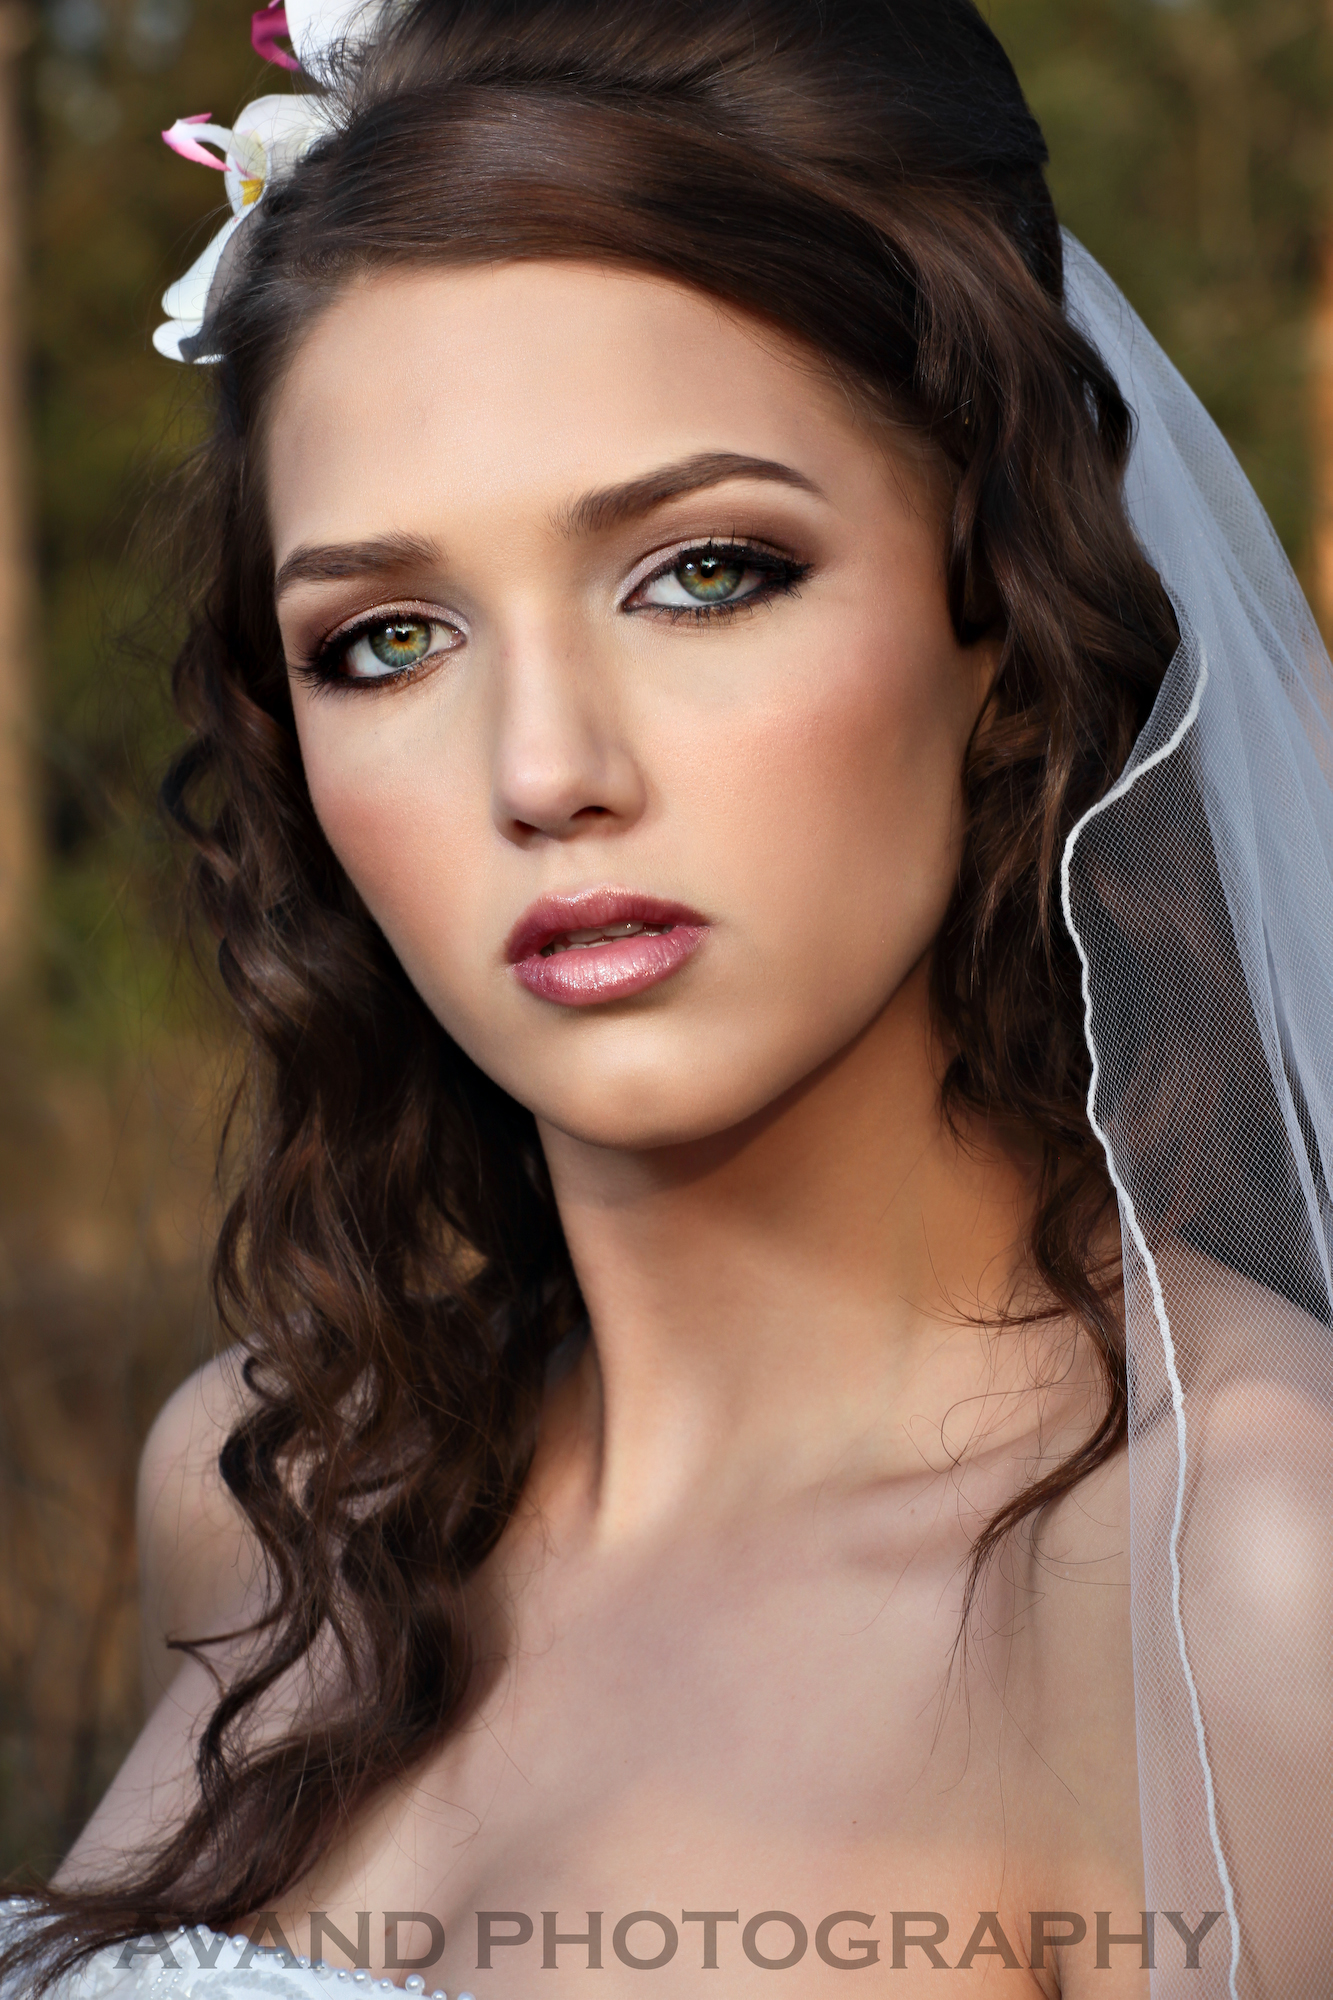 Pretty Makeup With The Eye Glitters 2052994: Model Portfolio Makeup In Houston « Professional Makeup